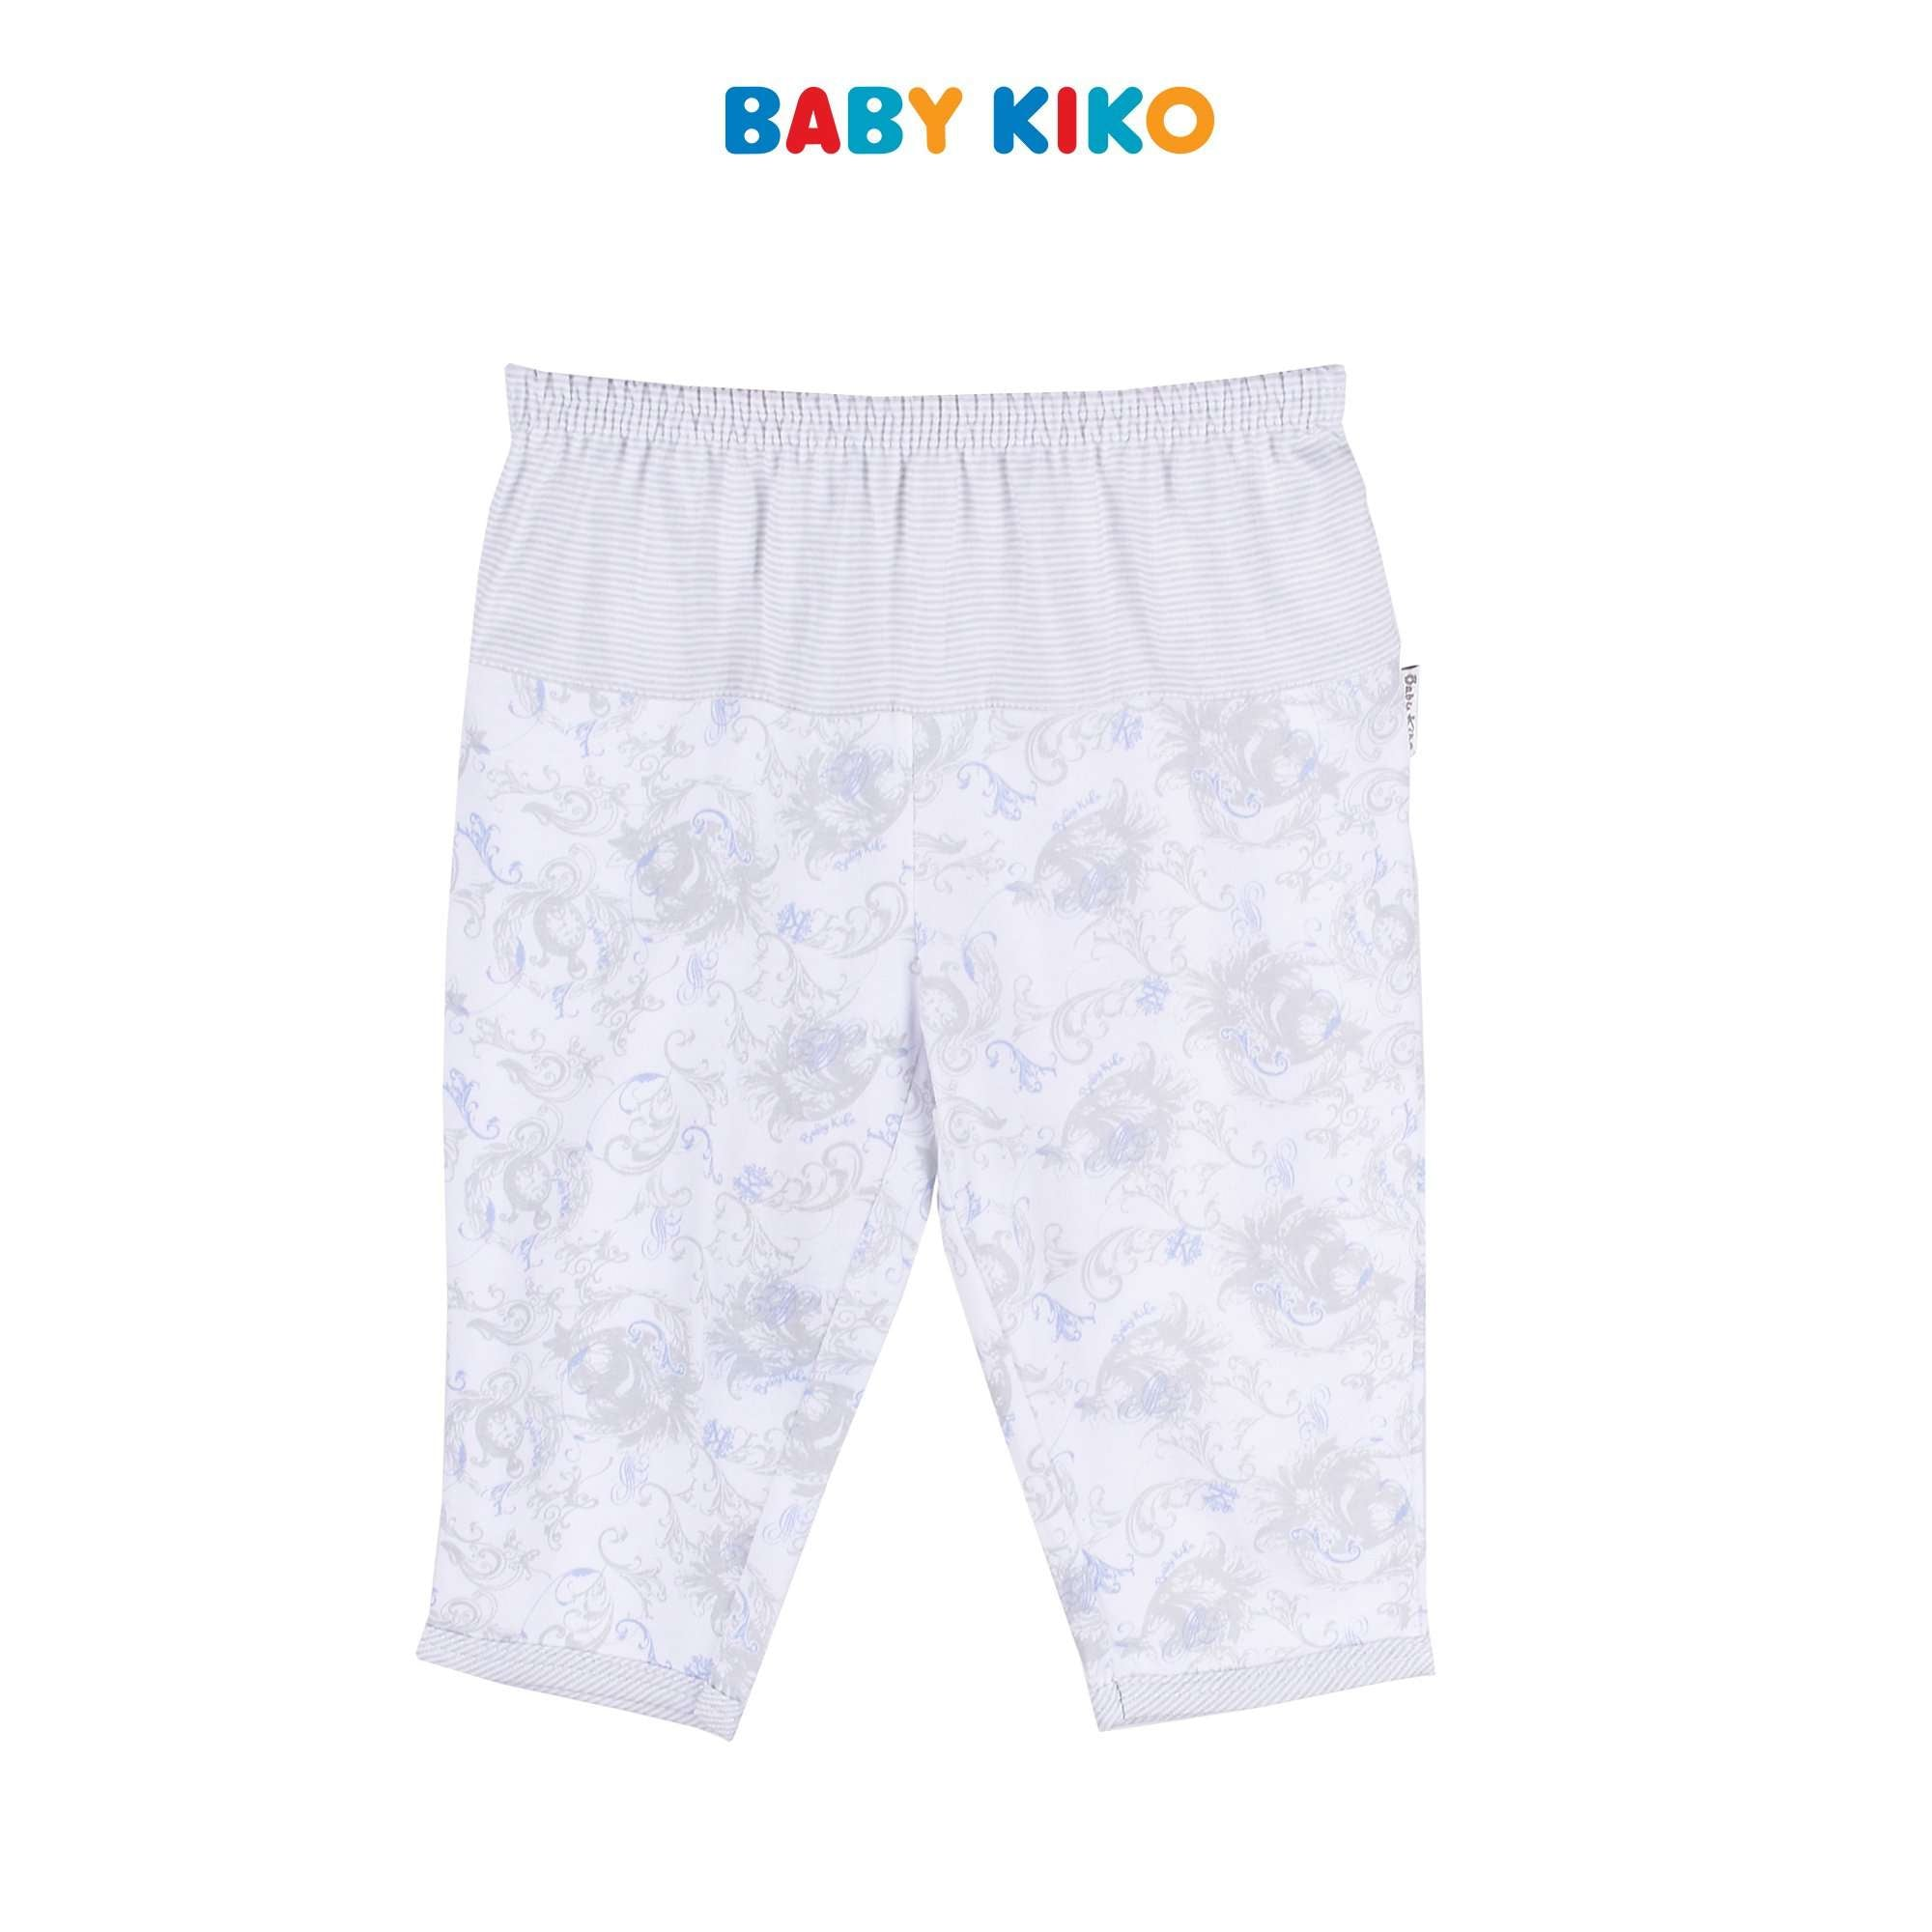 Baby KIKO Baby Boy Long Pants - White 310166-282 : Buy Baby KIKO online at CMG.MY